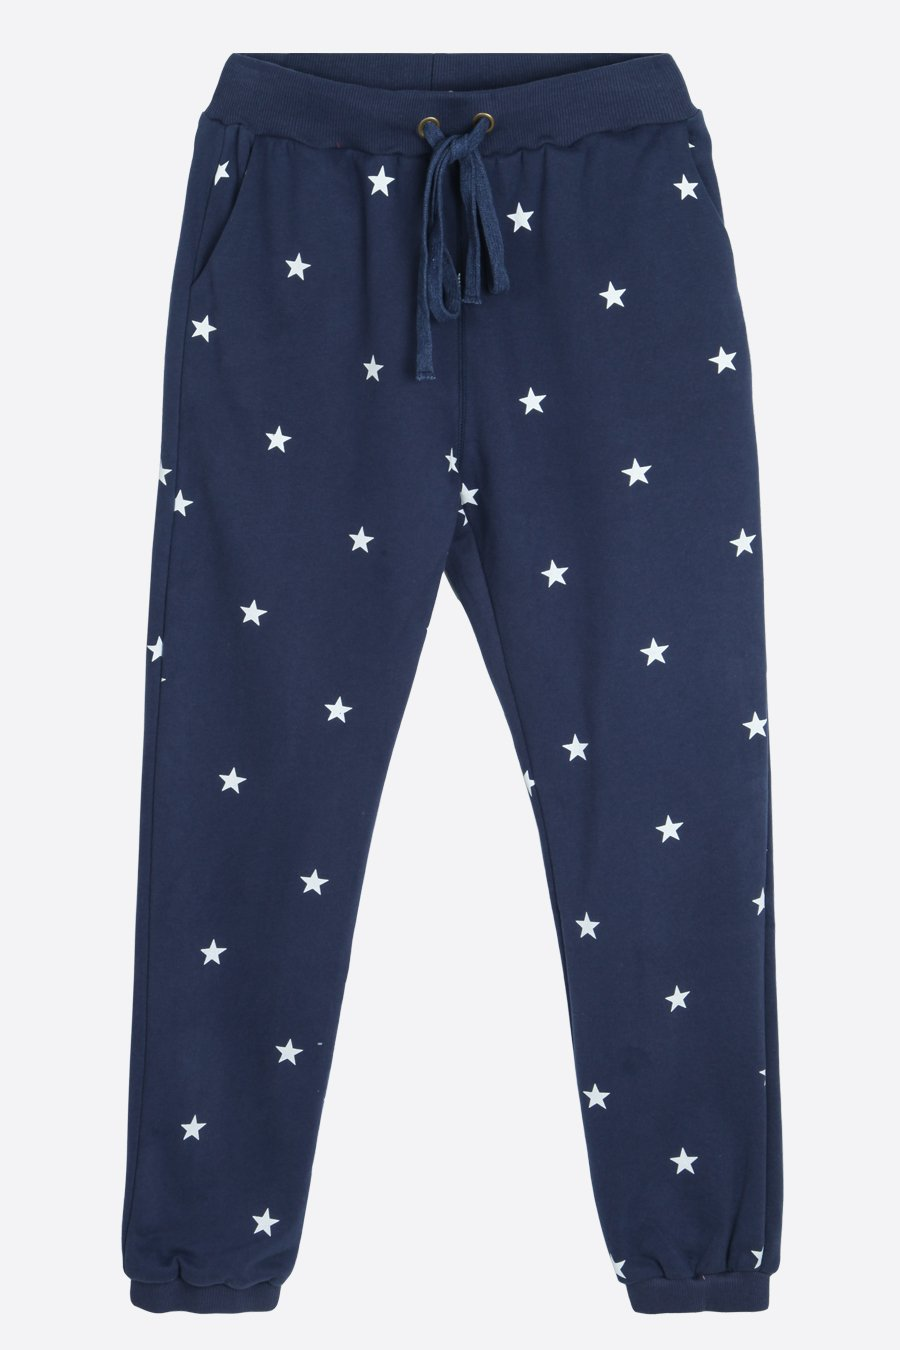 All Over Star Jogger Trousers - Navy Blue